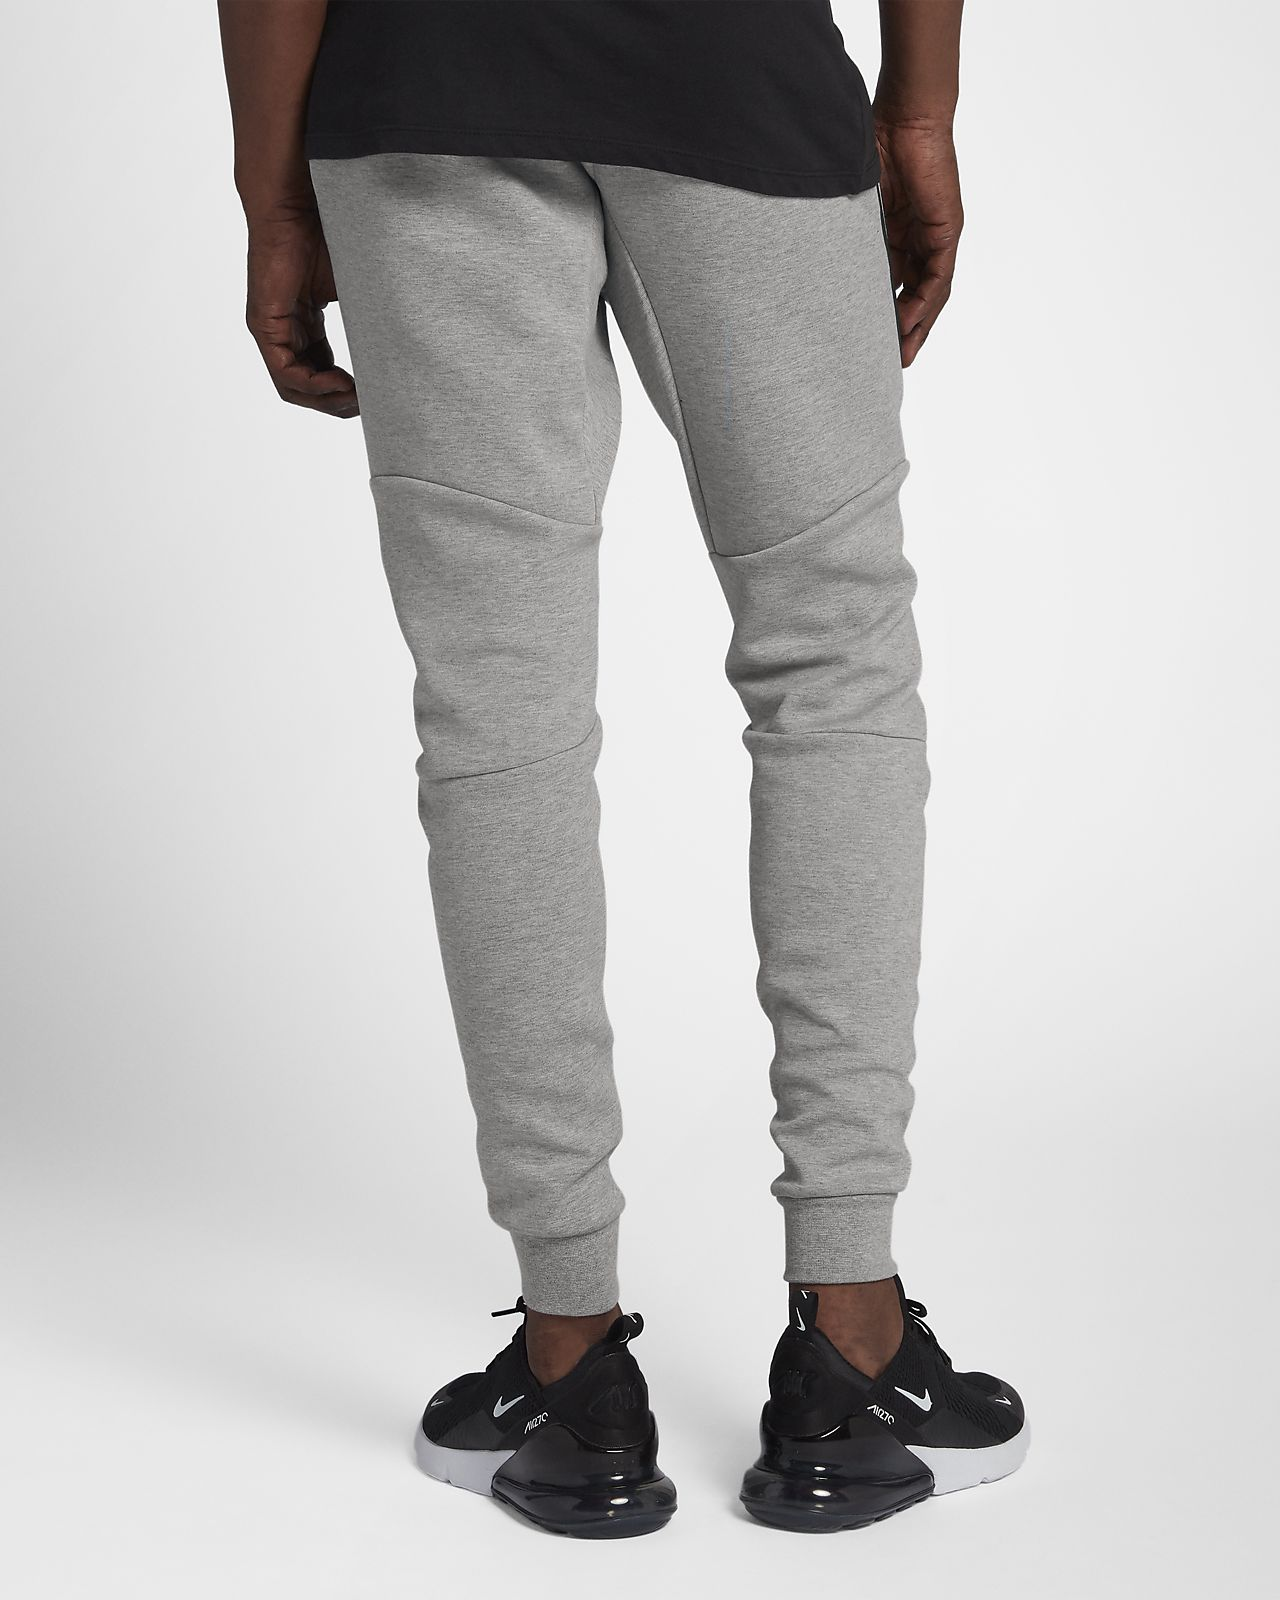 331dd6a40144b2 Nike Sportswear Tech Fleece Men s Joggers. Nike.com